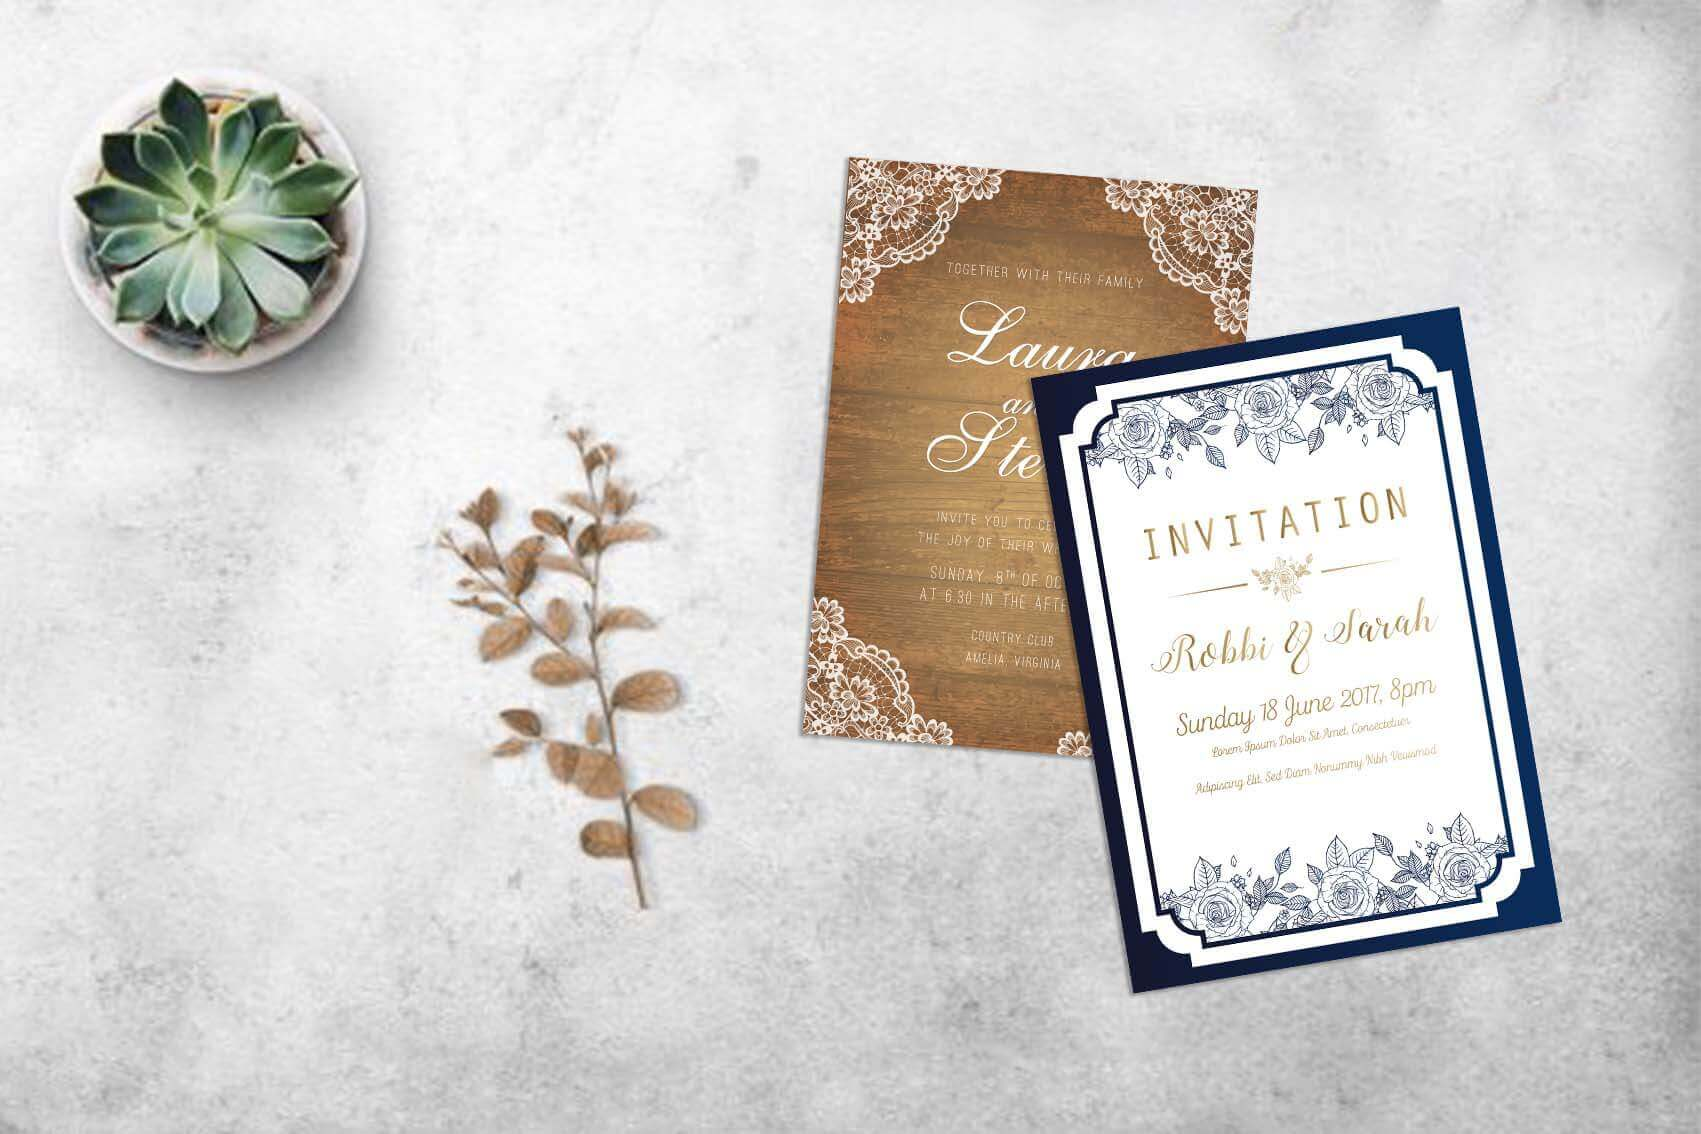 Printing Your Own Wedding Invitations: Wedding Card Invitation Templates